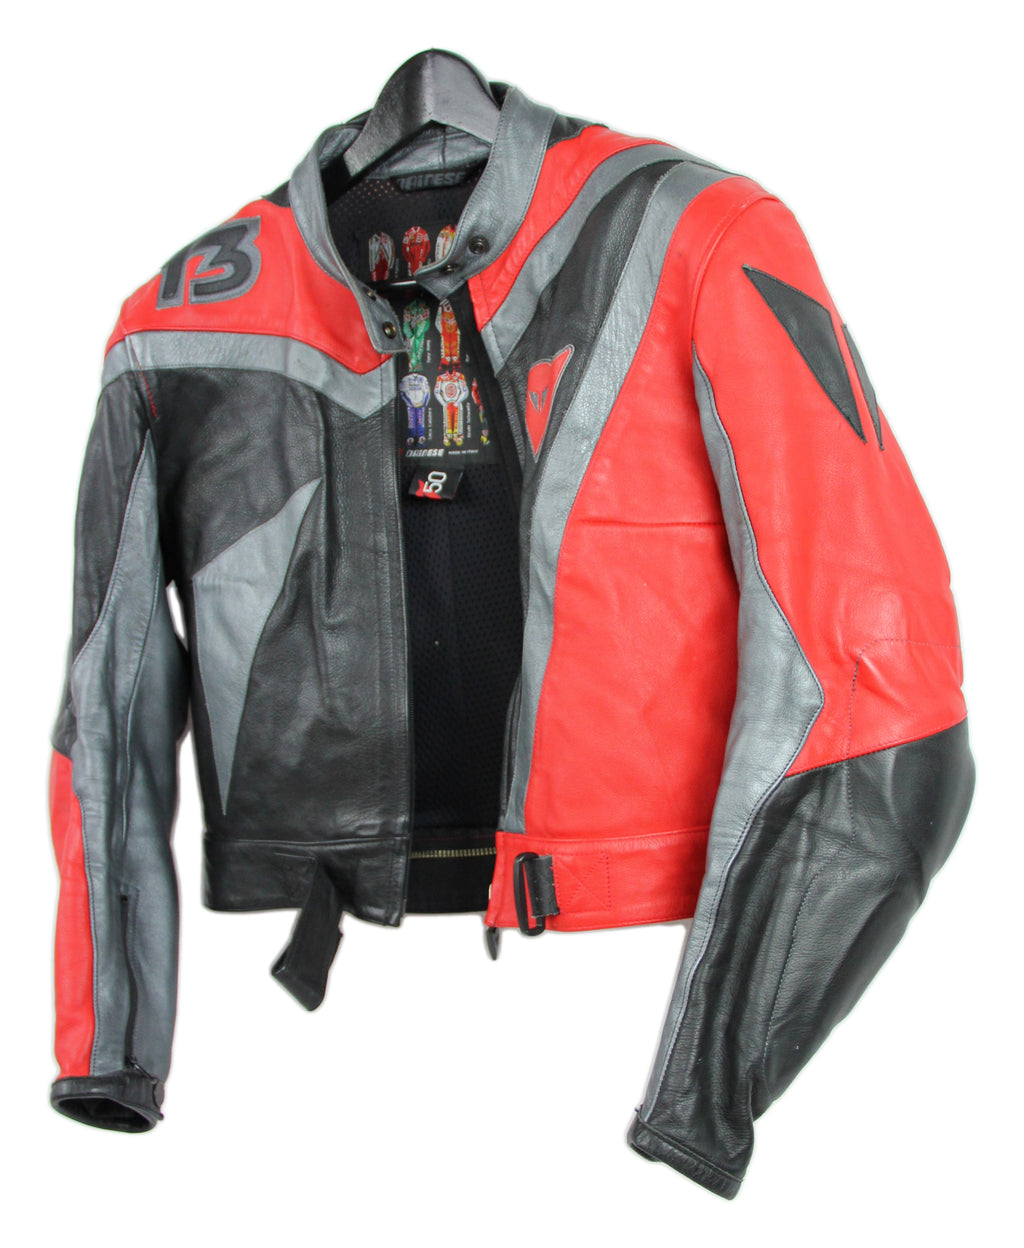 DAINESE T3 Women's Leather Motorcycle Biker Jacket, SIZE L